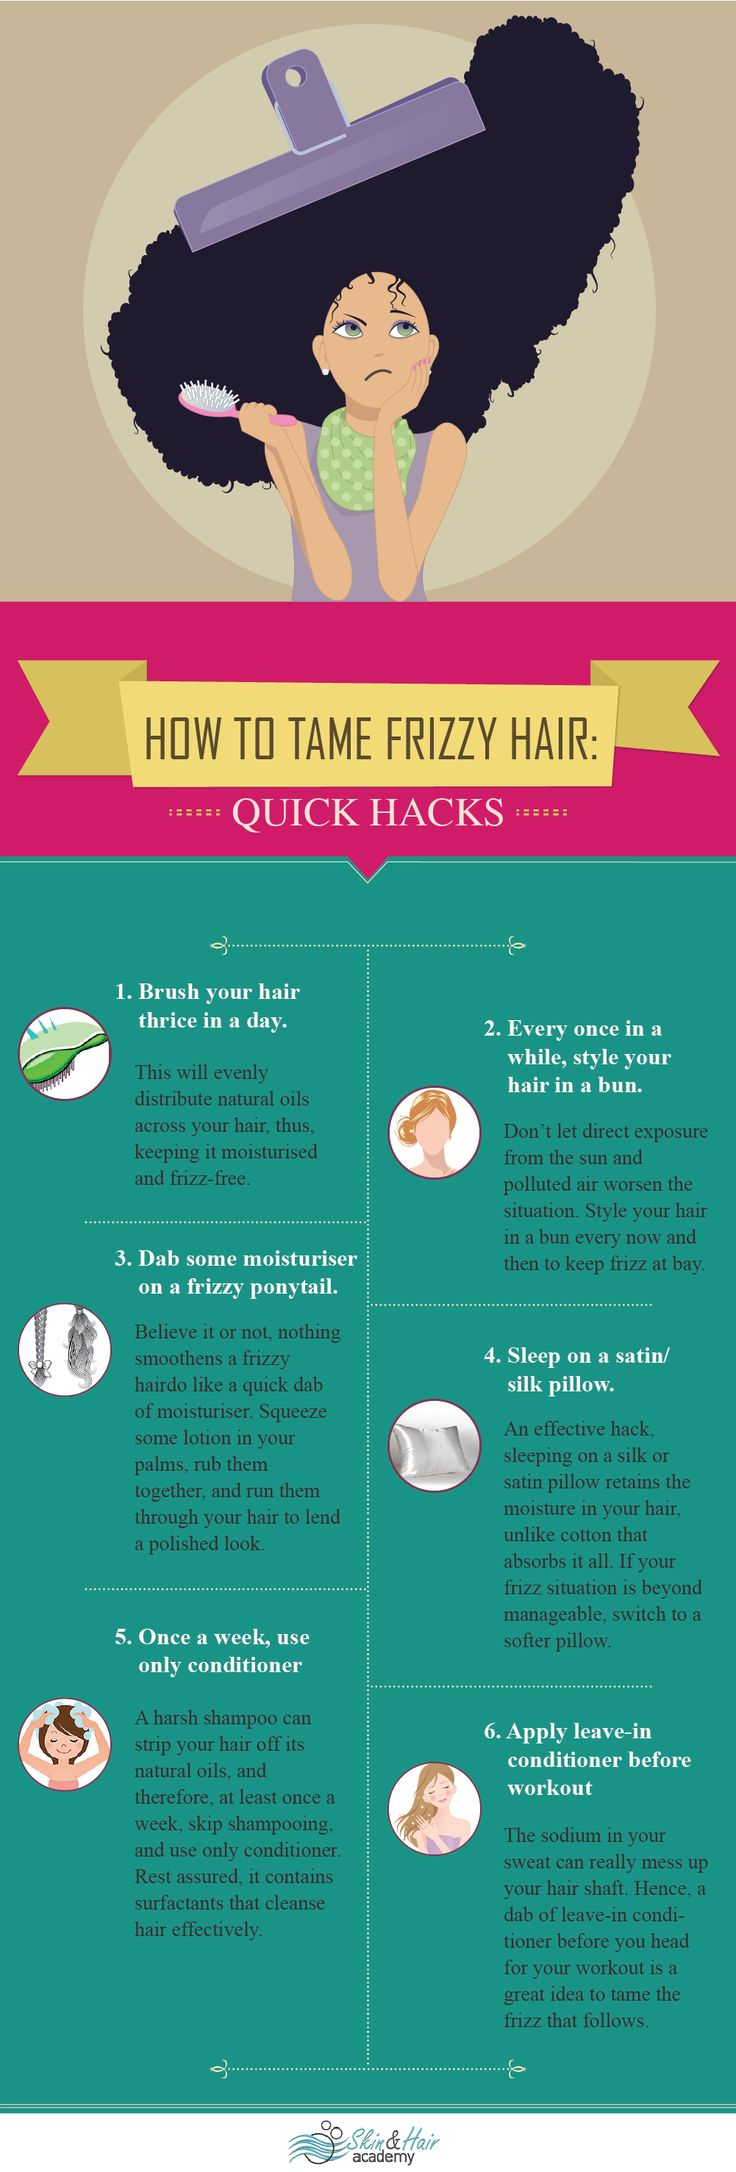 How to get rid of frizzy hair #frizzyhair #haircaretips #dryhair